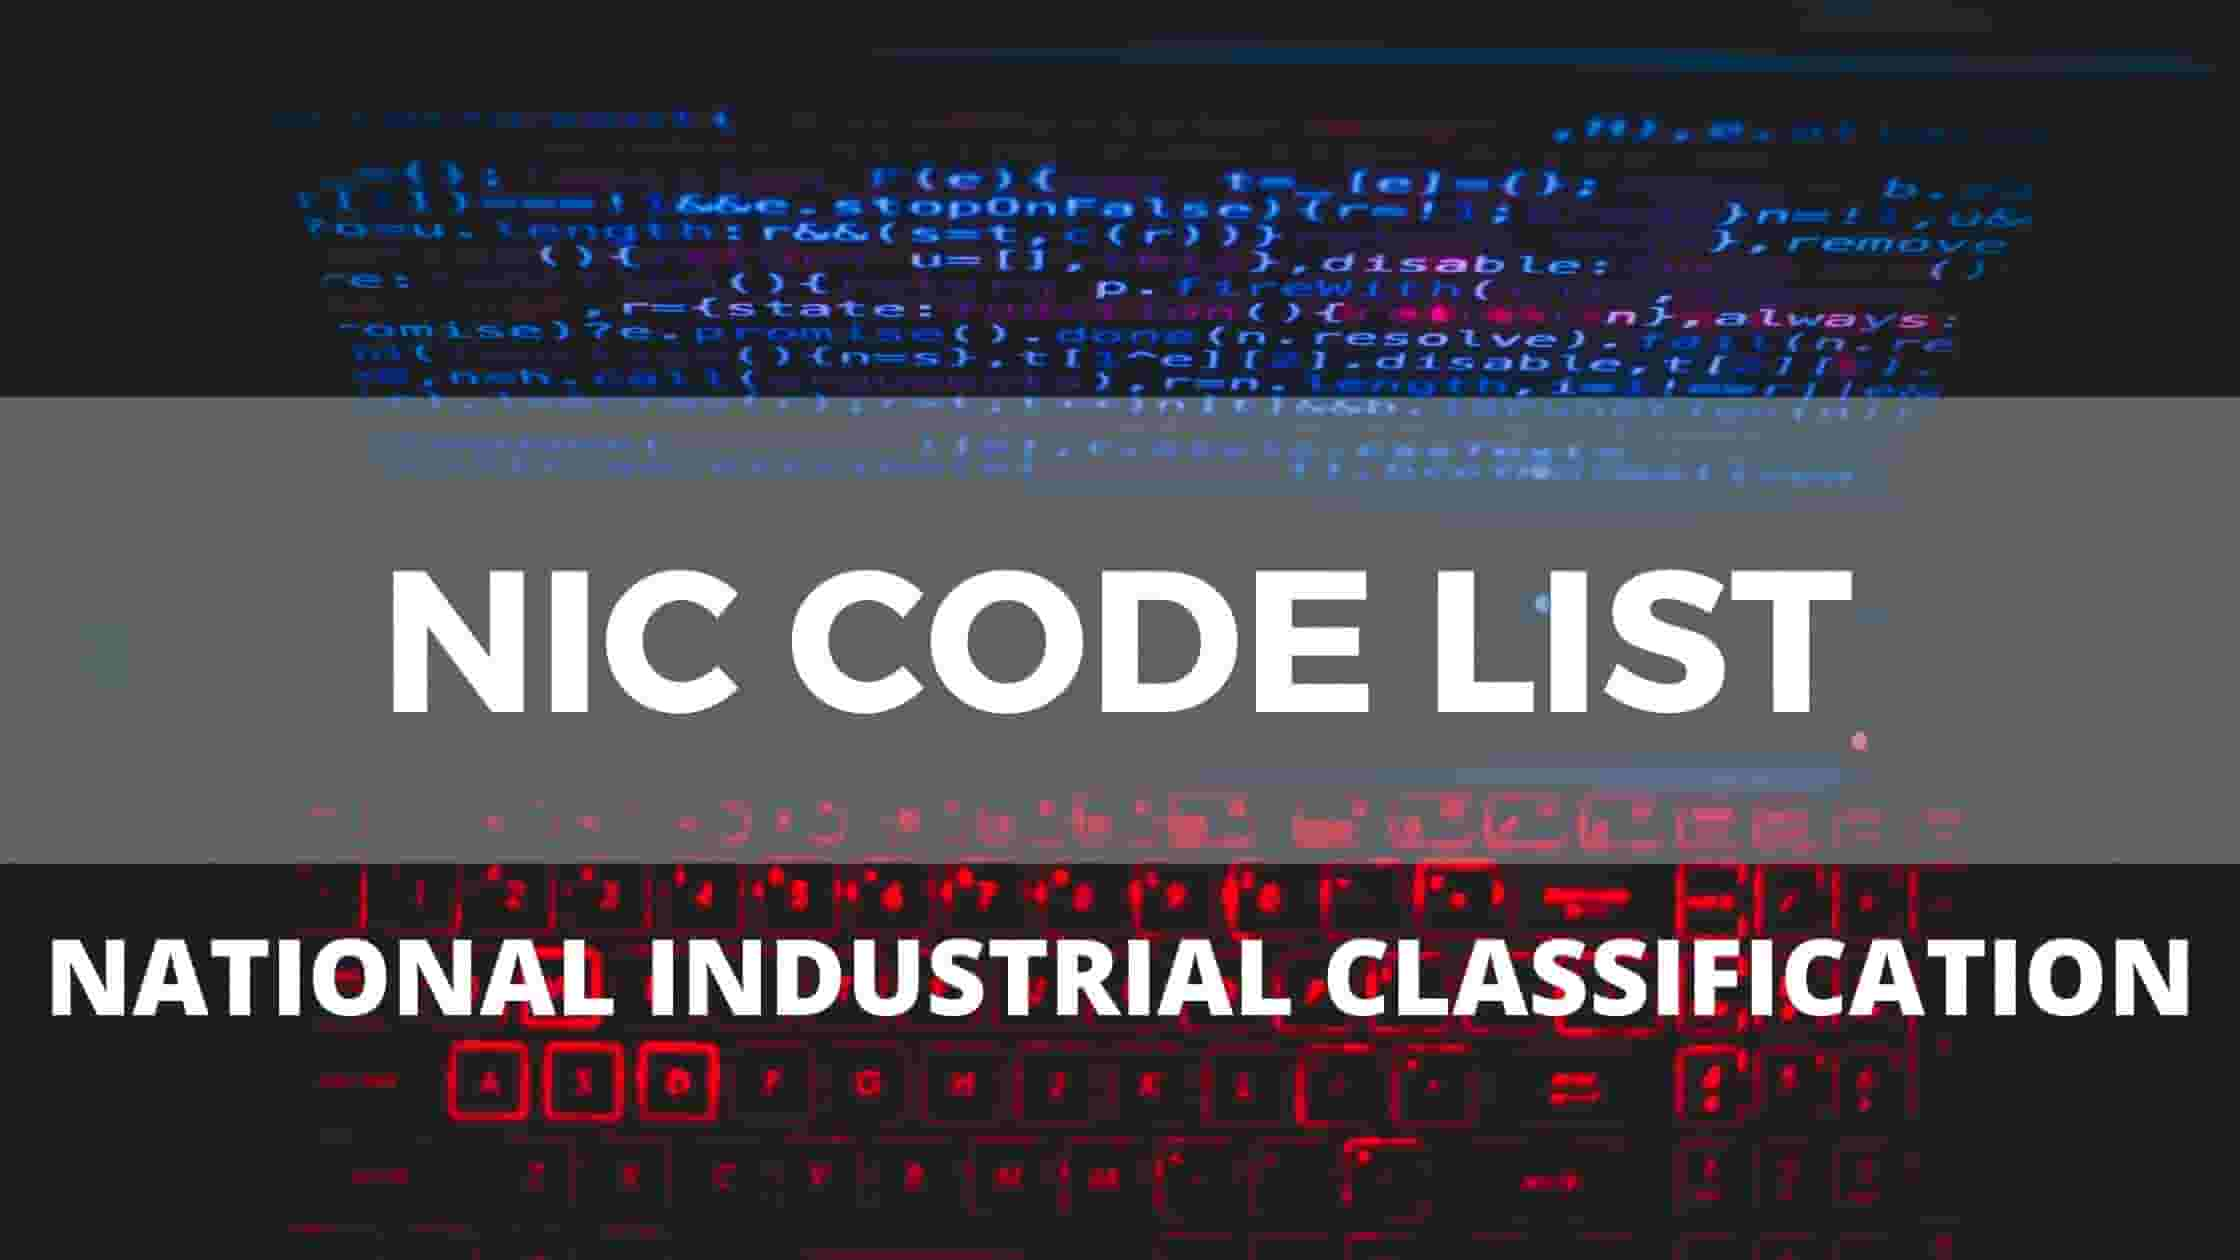 nic code list - National Industrial Classification